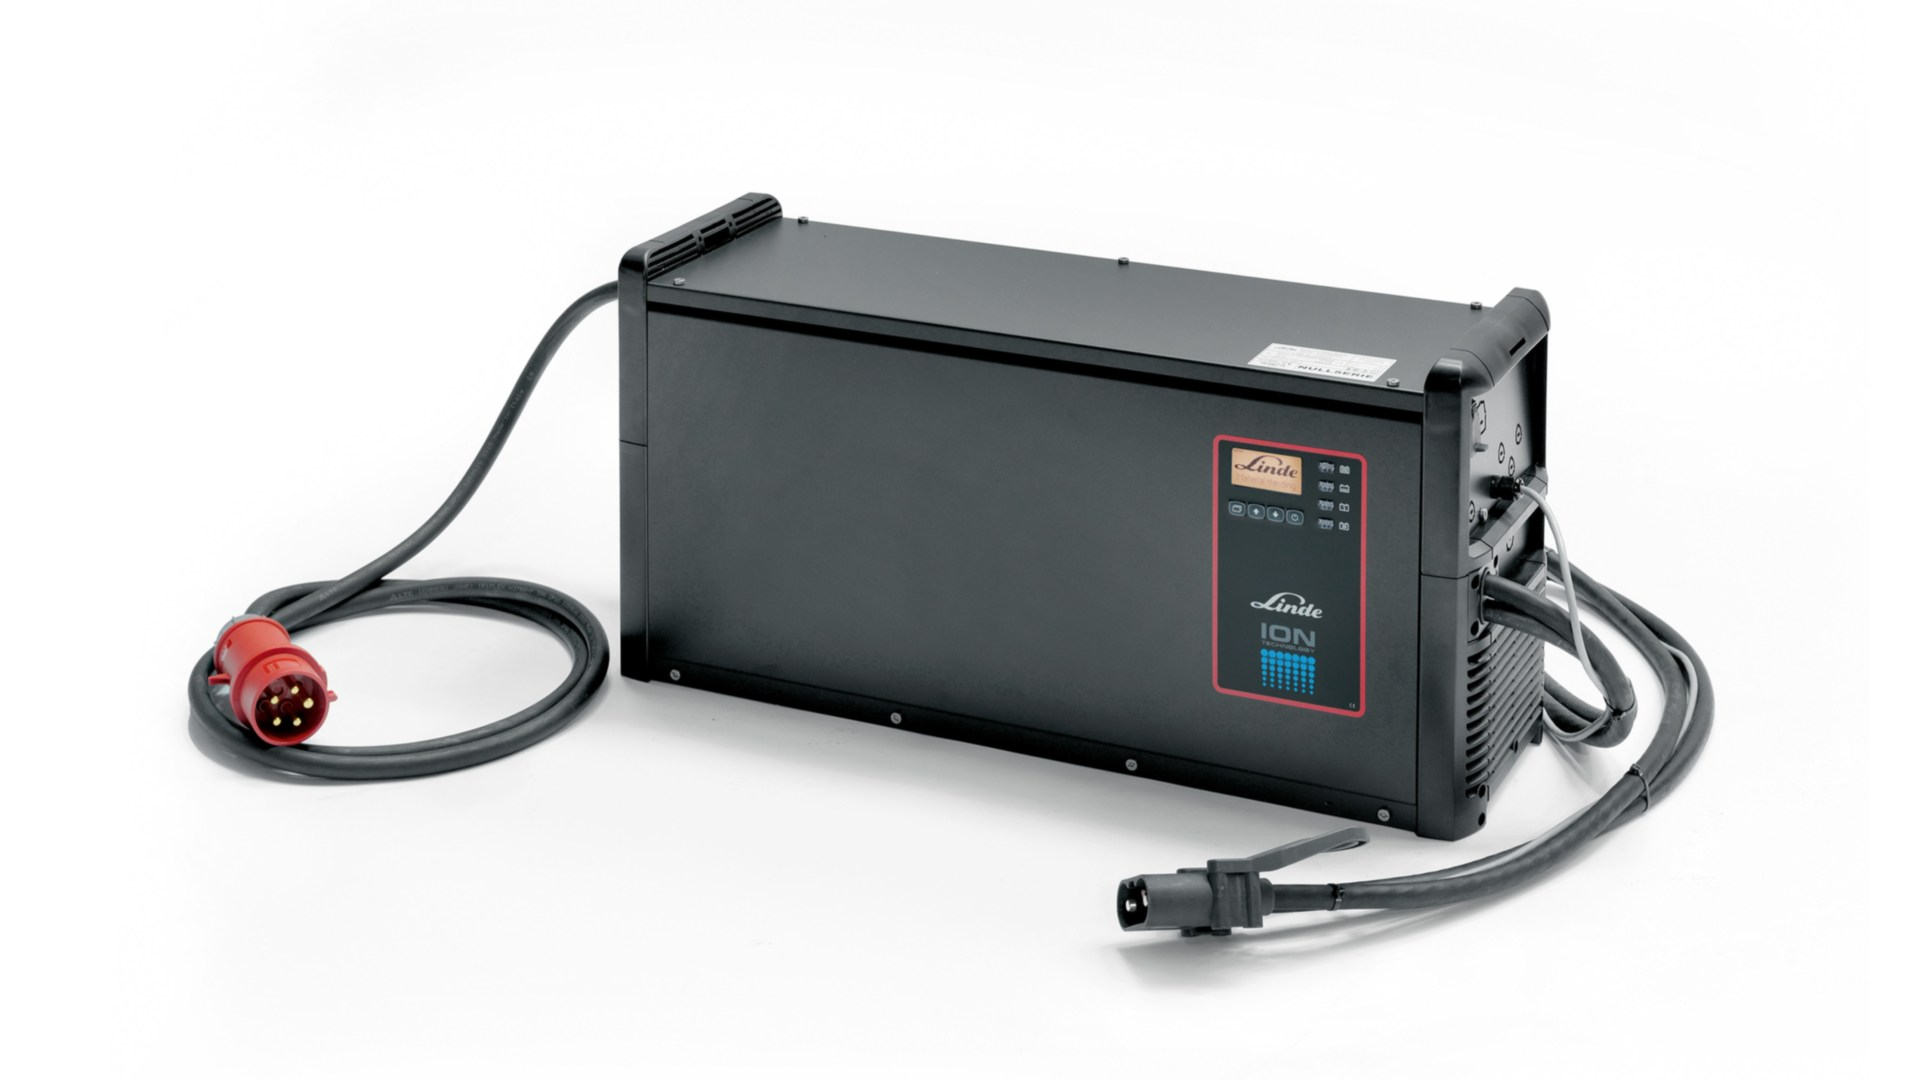 lithium_ion_charger-4337_4635_B2_16x9w1920